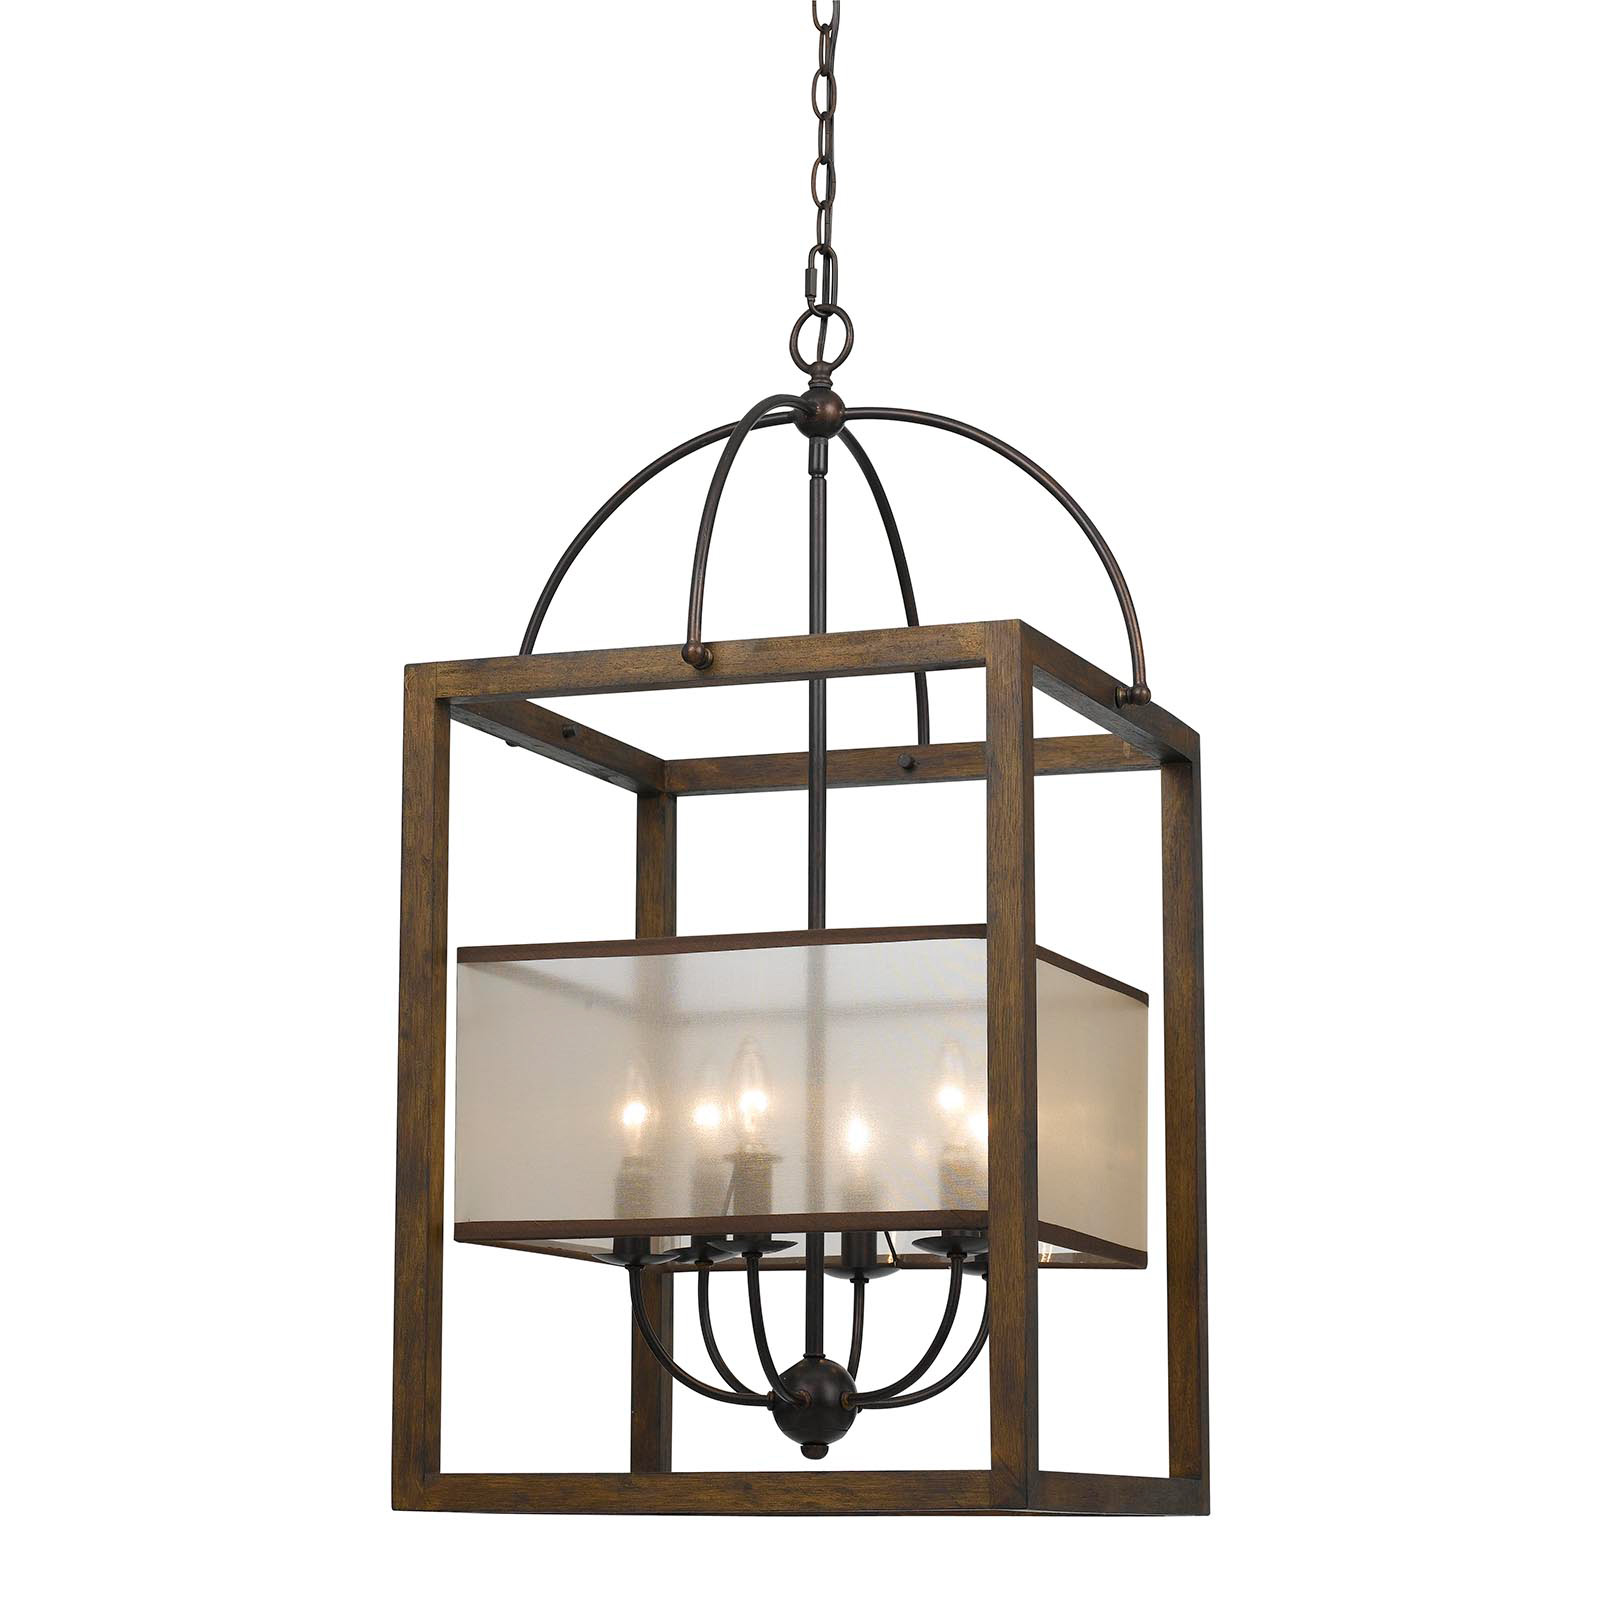 Cal Lighting Products Ceiling Fixtures Fx 3536 6l